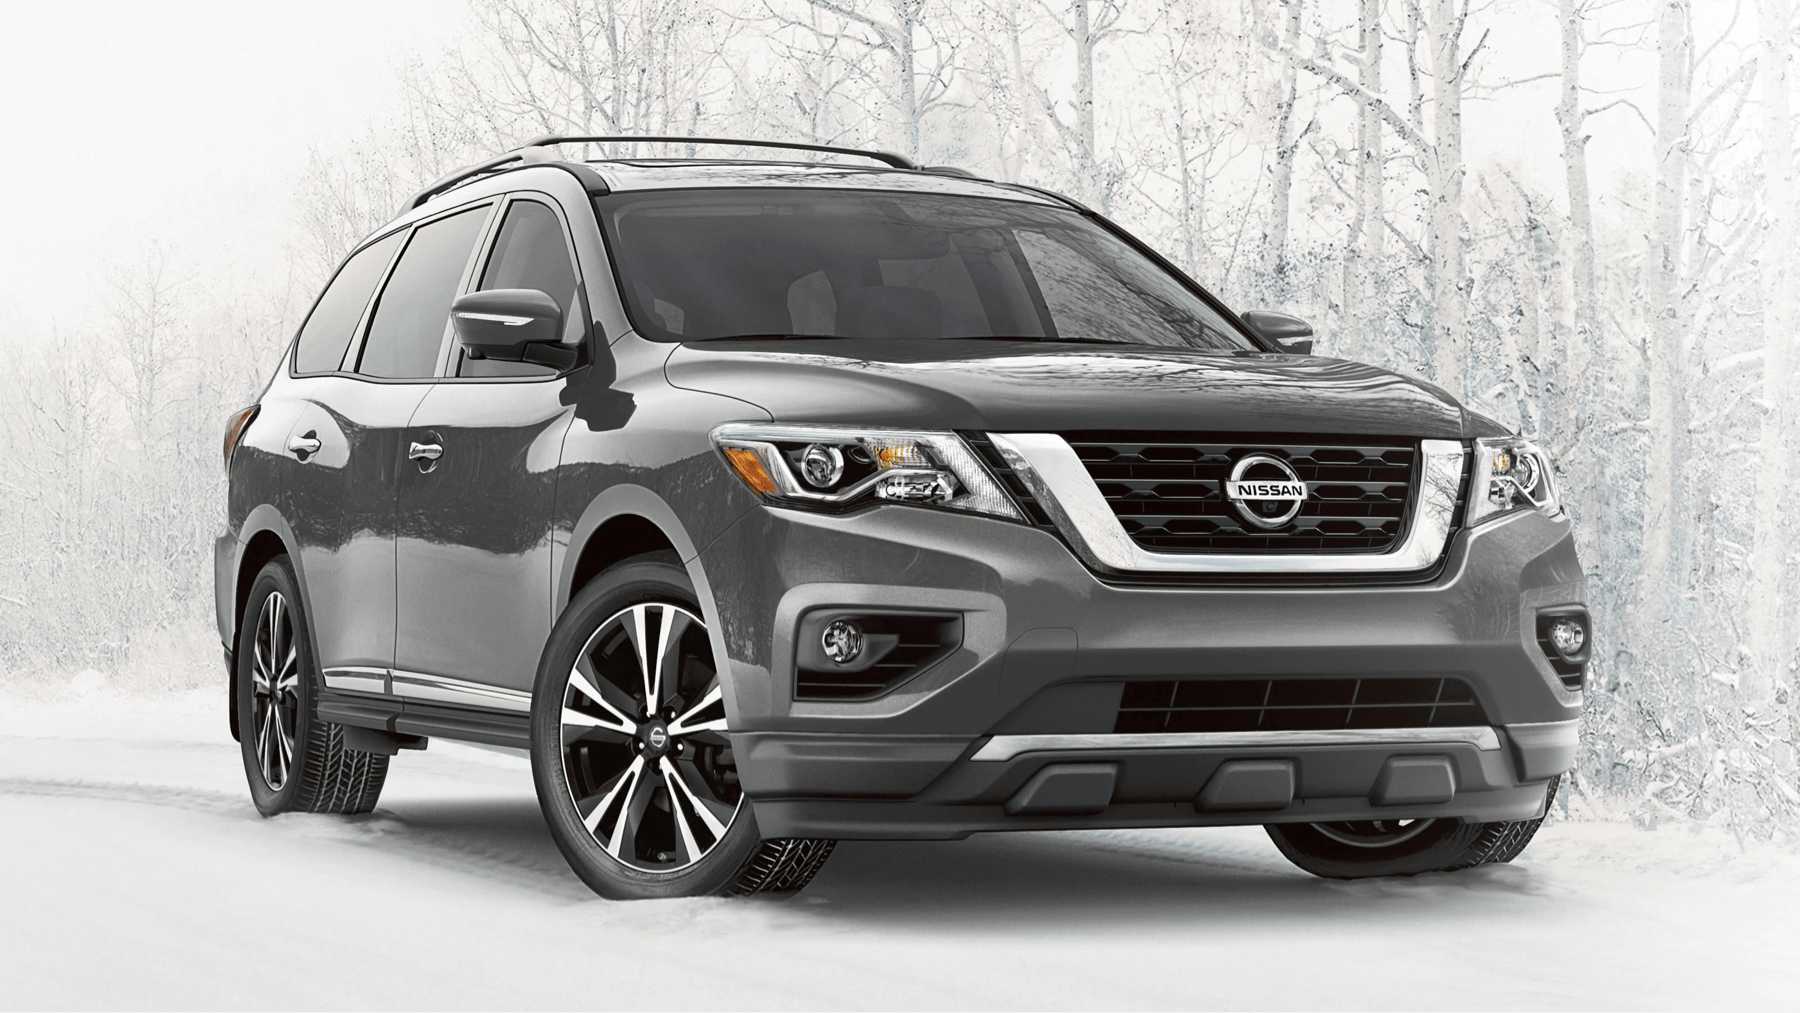 2020 Pathfinder driving in snow